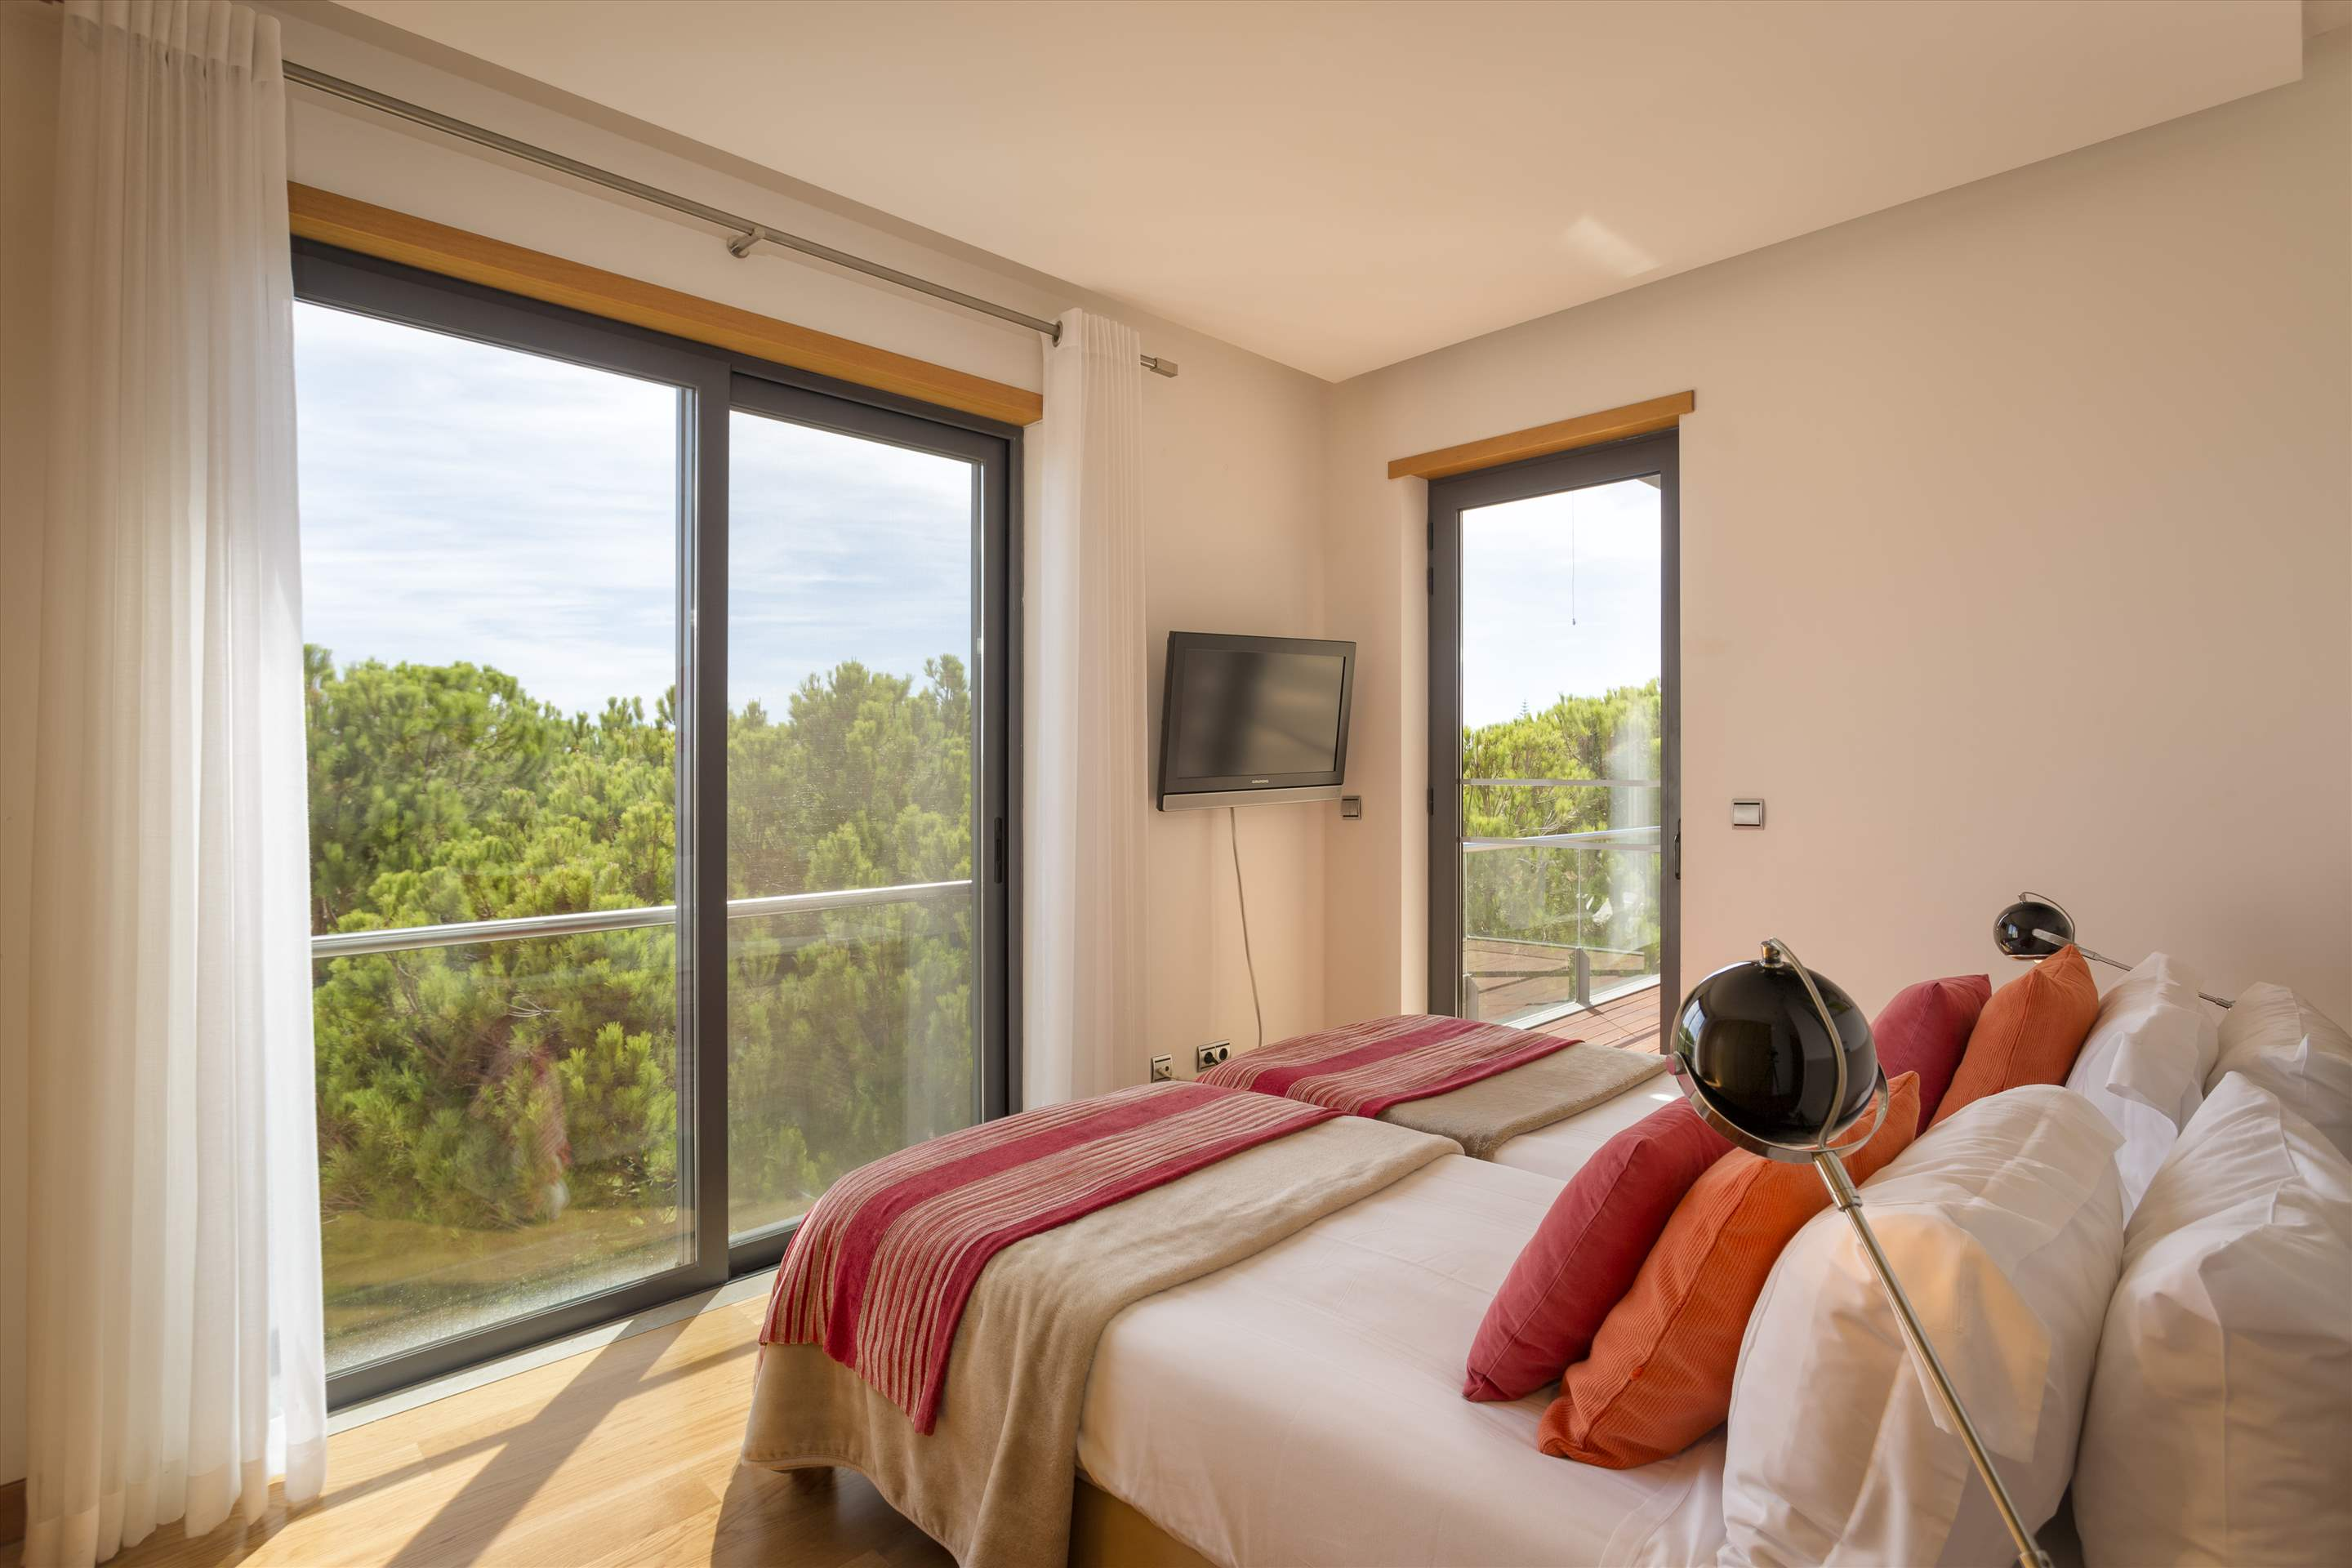 Apartment Rosie, 2 bedroom apartment in Vale do Lobo, Algarve Photo #15